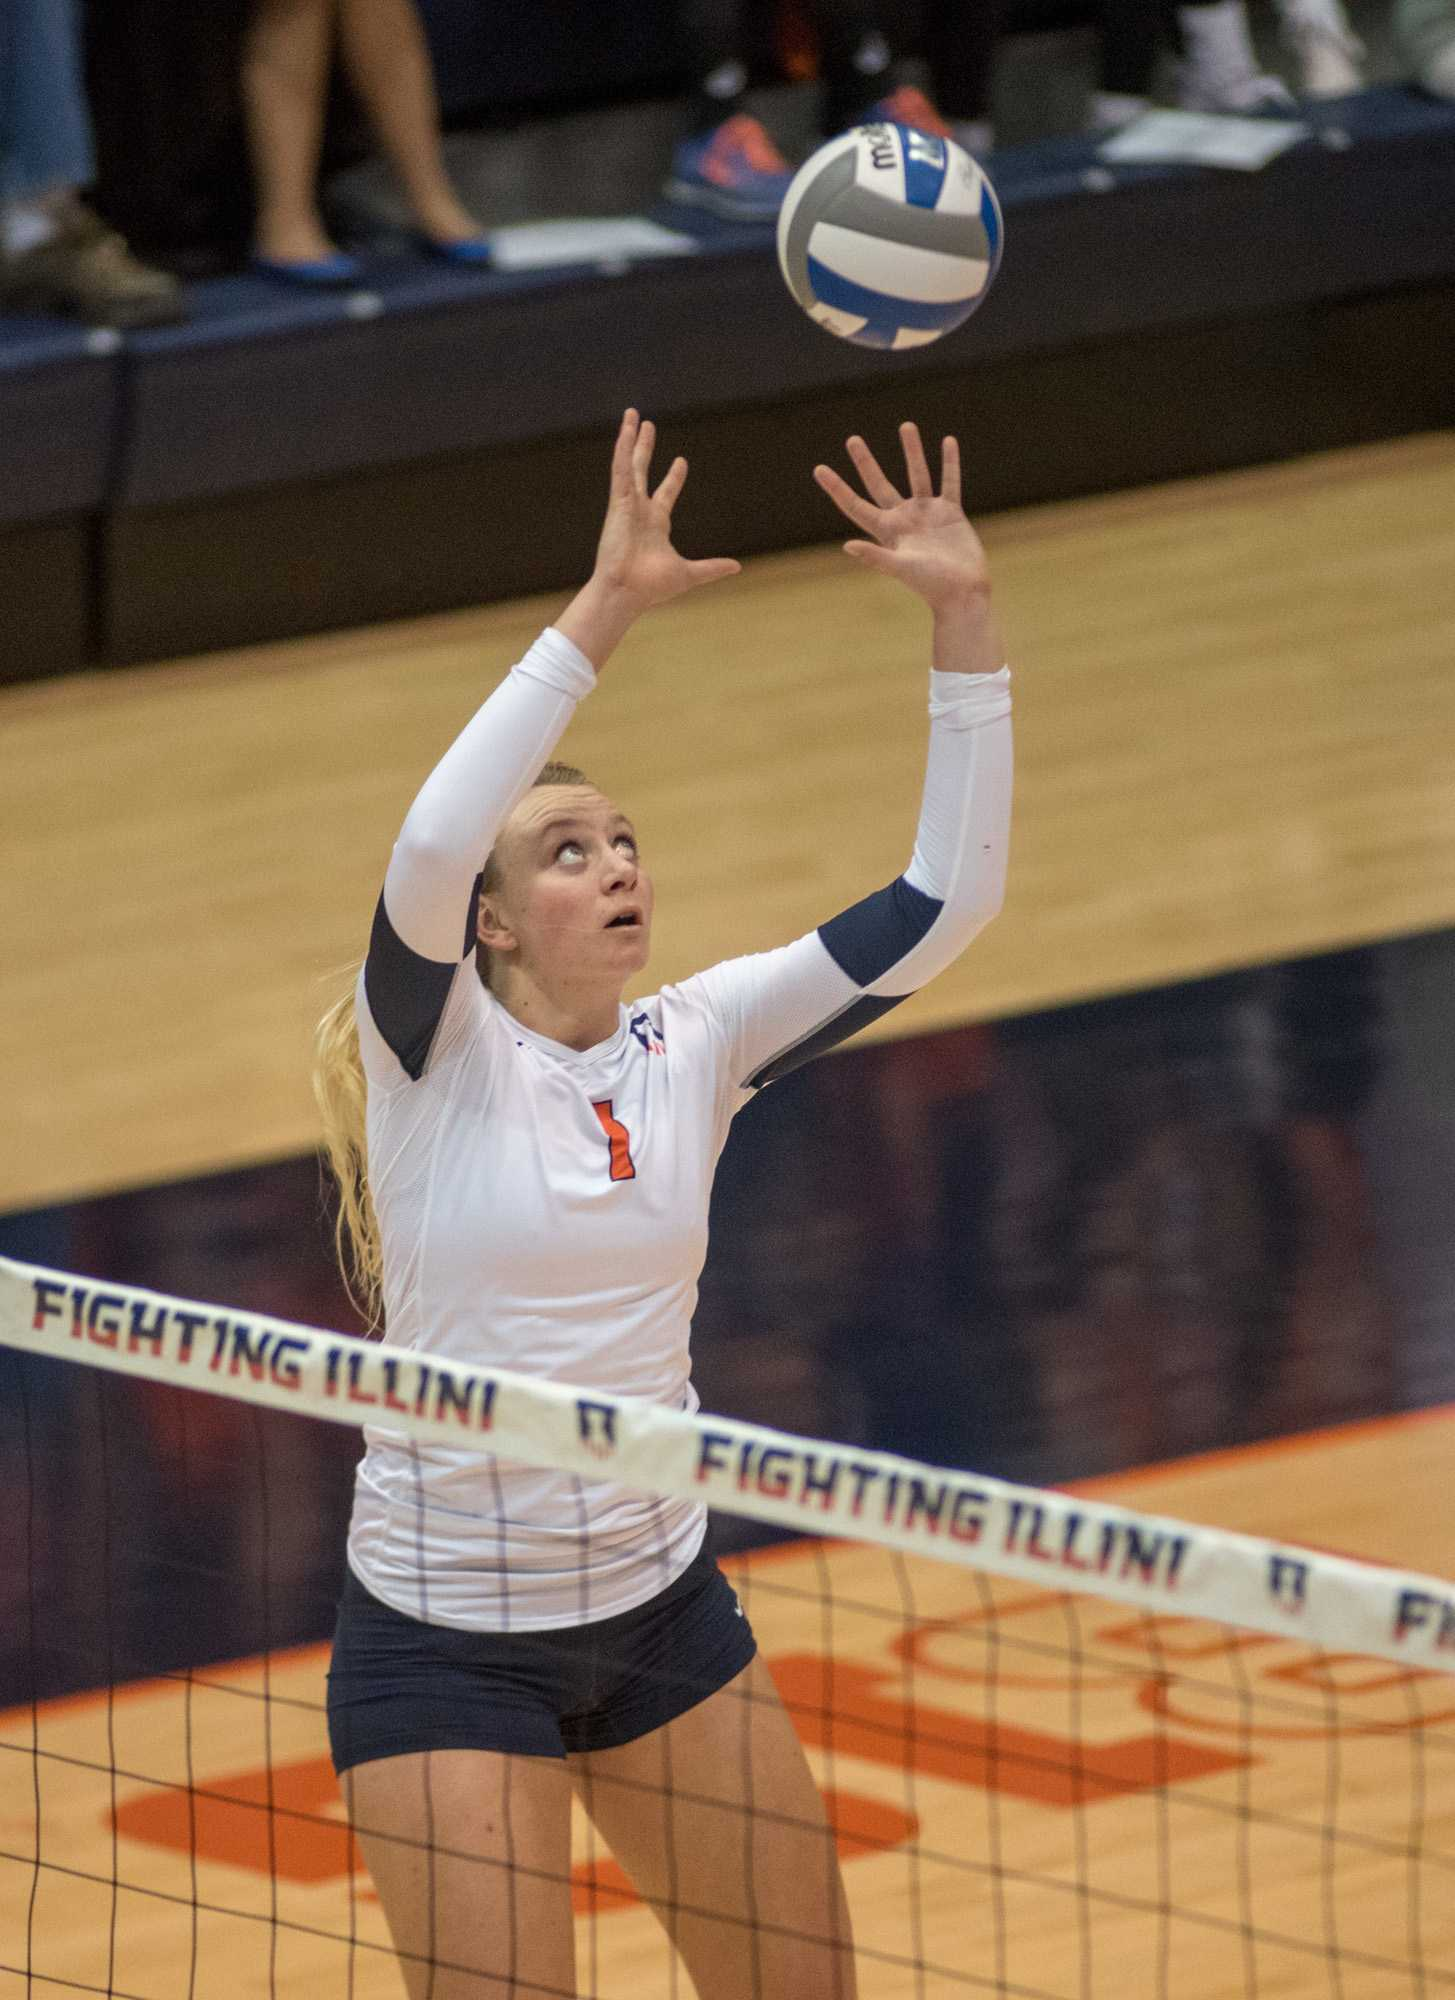 Jordyn Poulter sets the ball during a game against Iowa at Huff Hall. Poulter is this week's Illini of the Week.